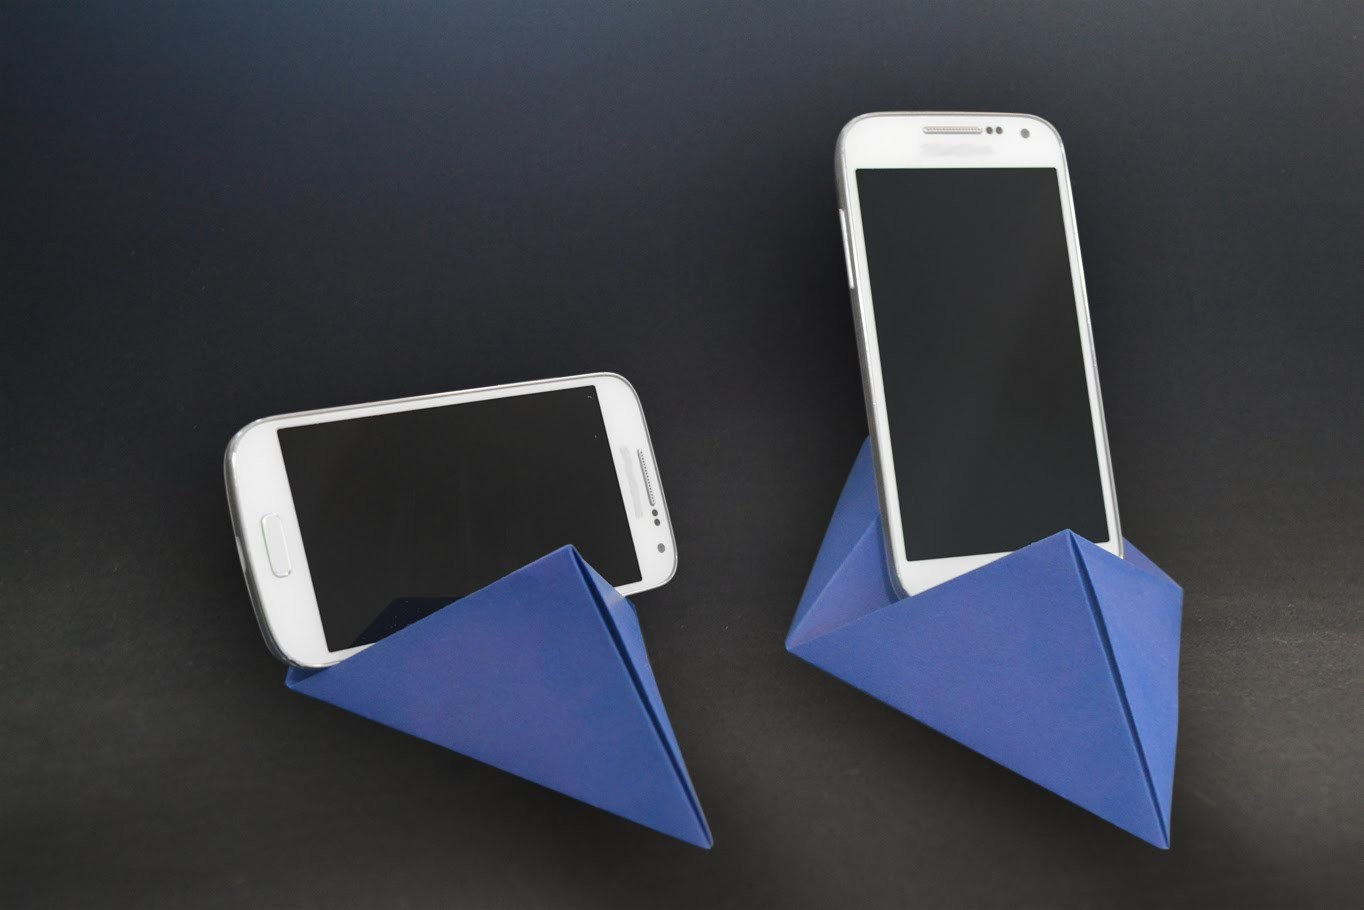 Origami: Support for Smartphone